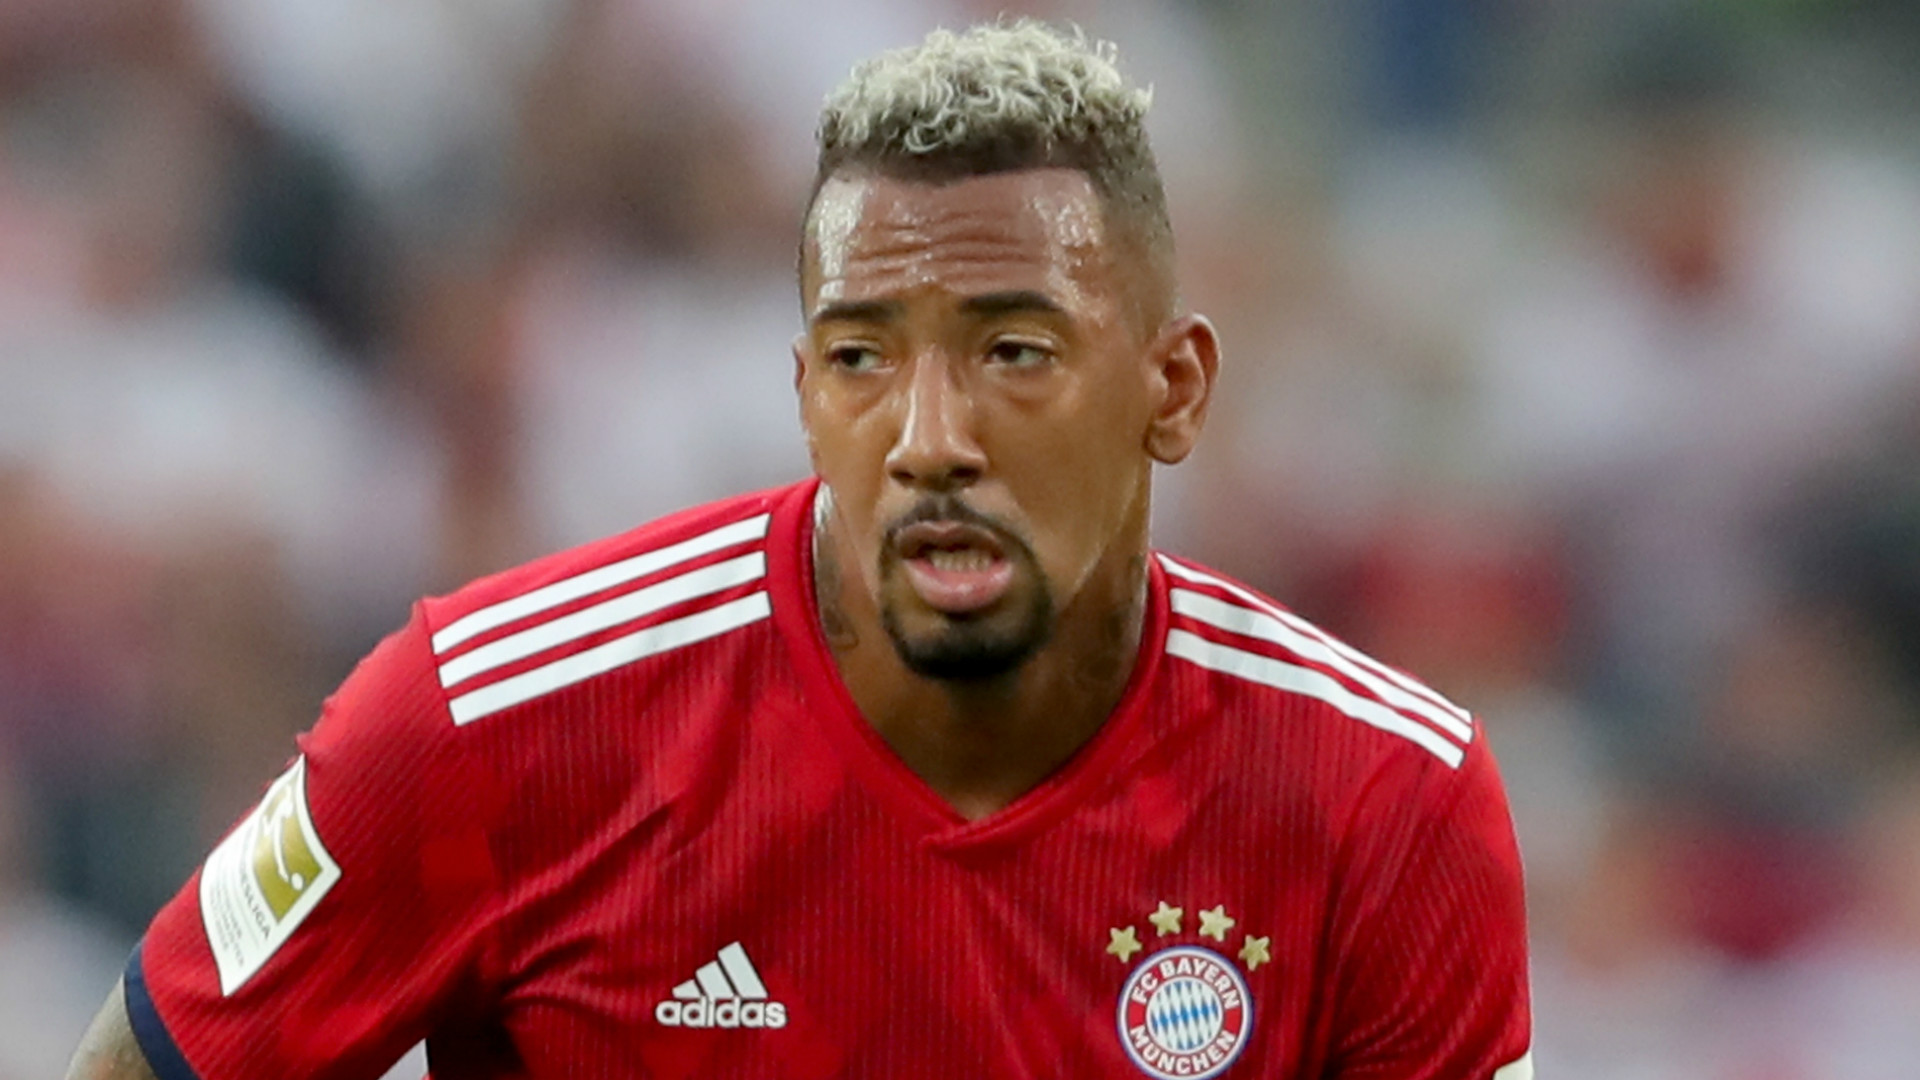 EPL: Boateng reveals what he told Mourinho before rejecting Manchester United move